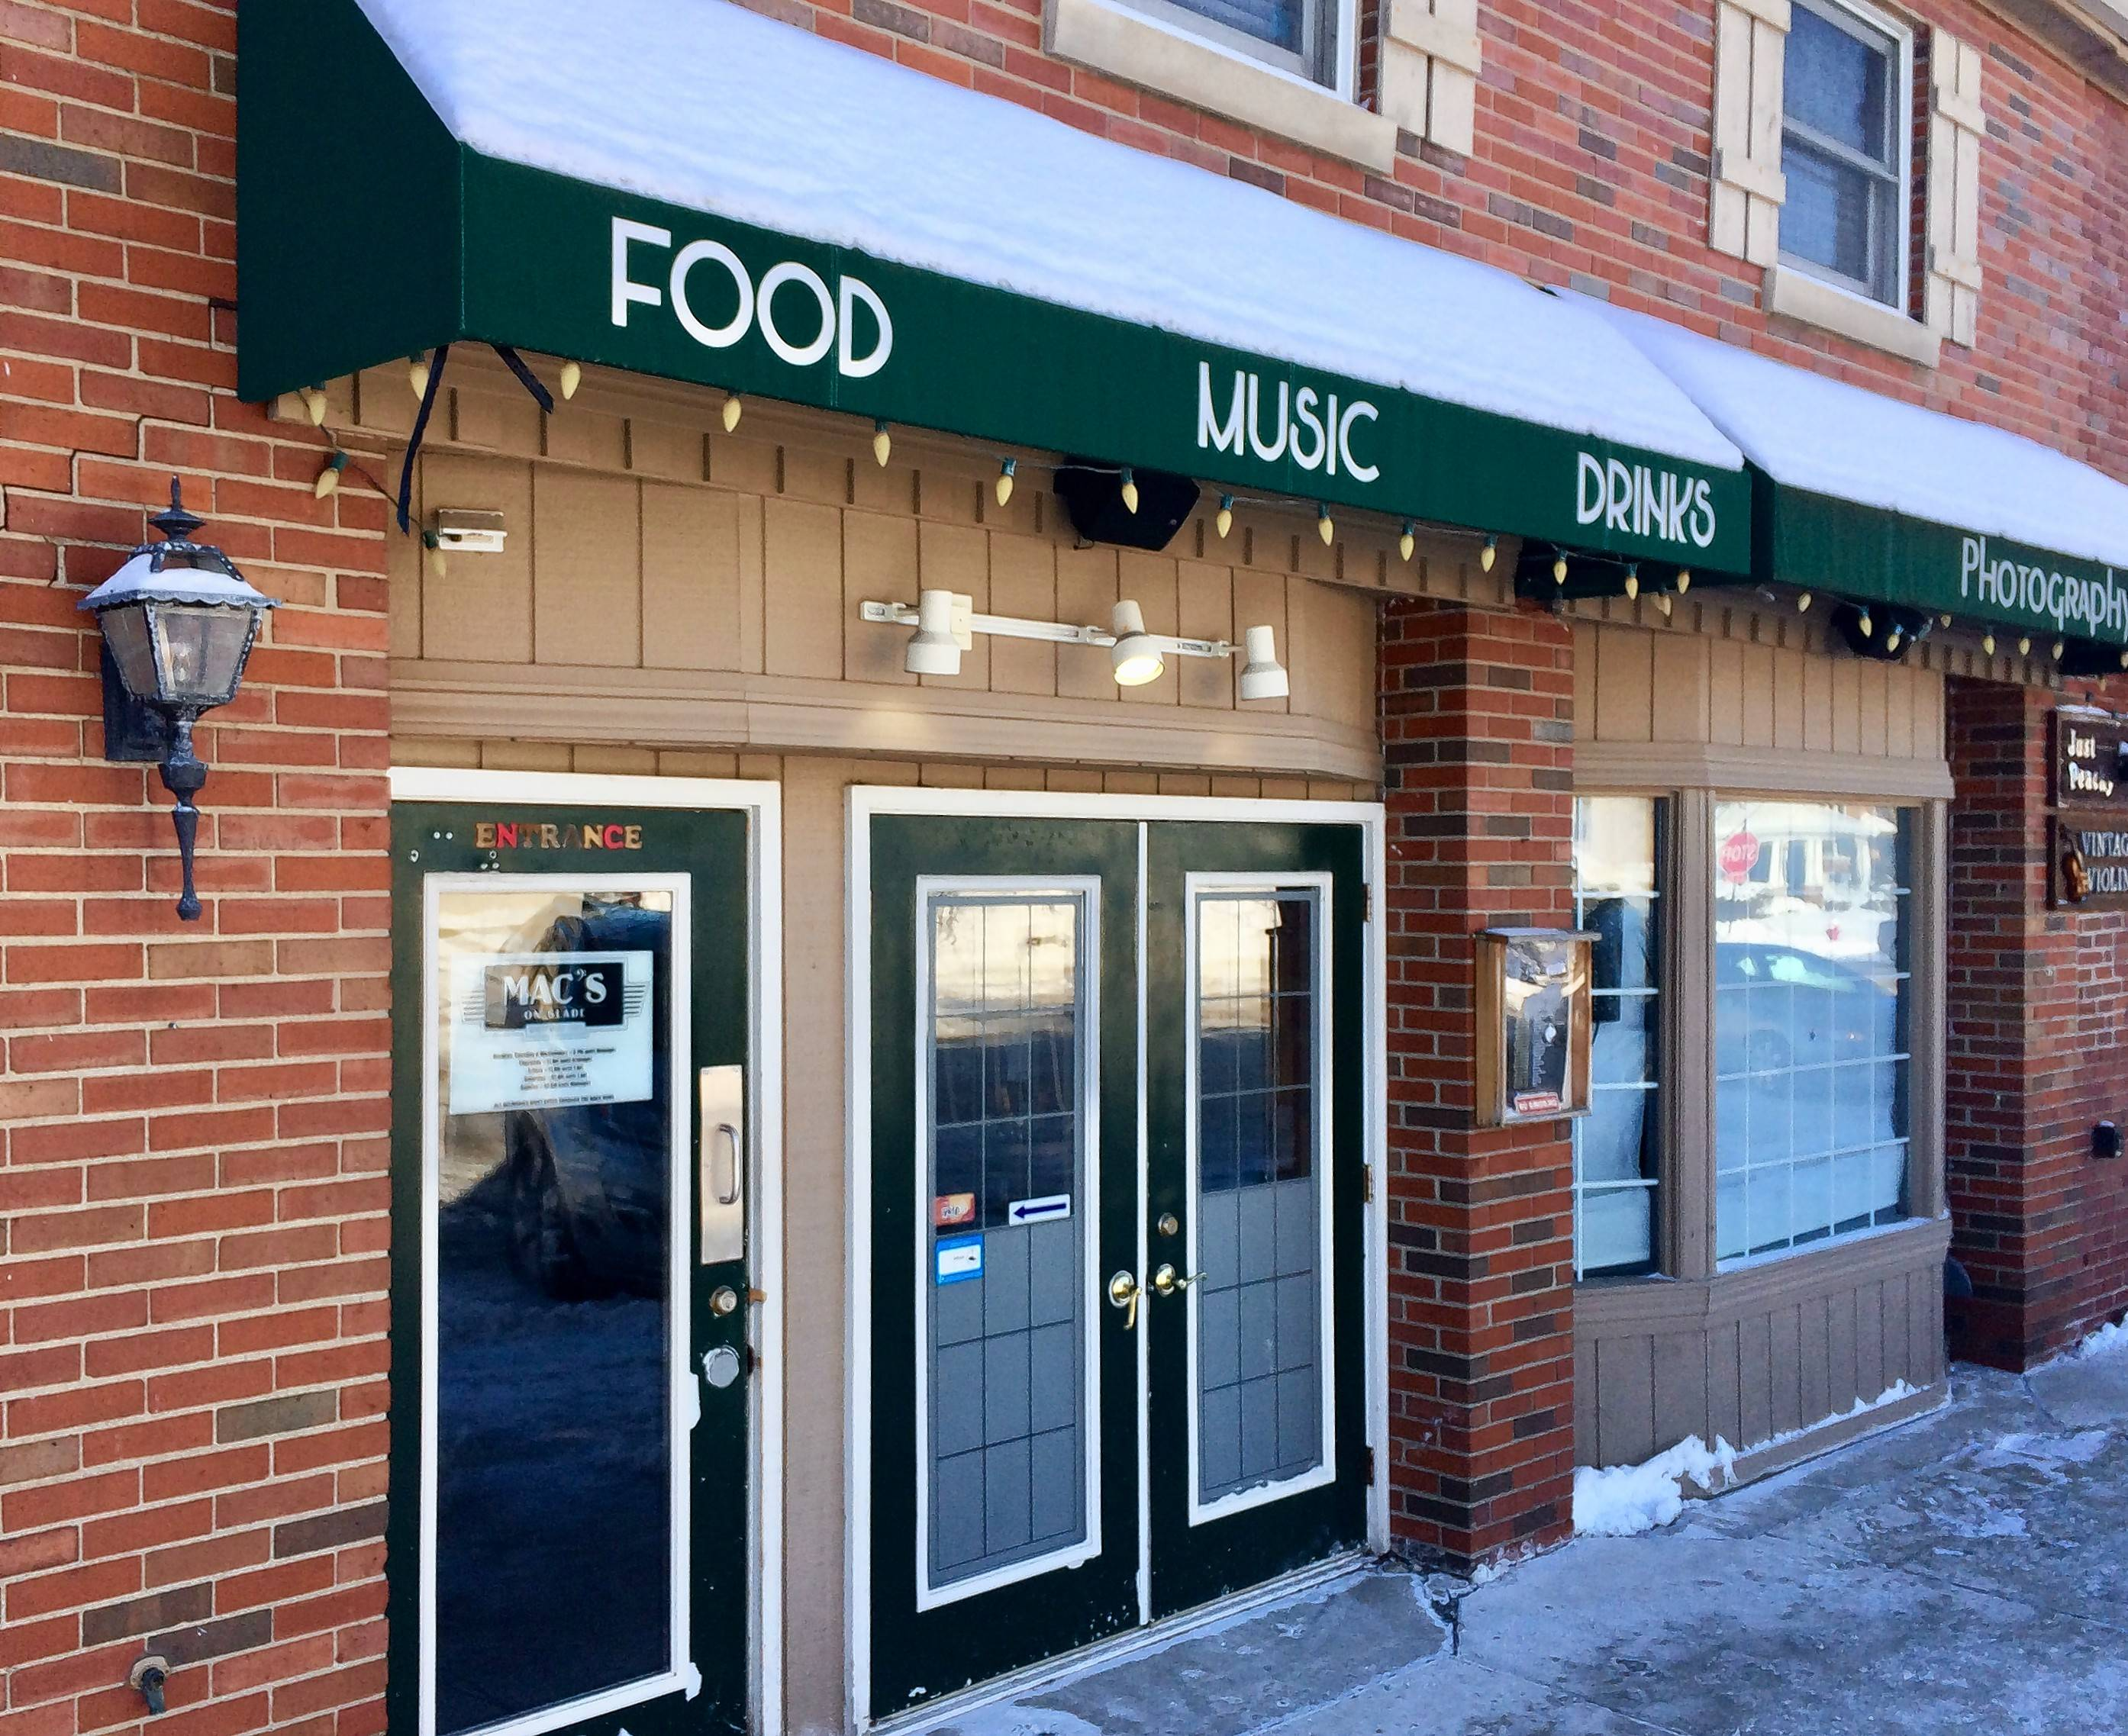 Mac's on Slade in downtown Palatine has a new liquor license and can continue operating. But Palatine's elected officials, frustrated by a recent ordinance violation by the bar, warned they may not give the business another chance.